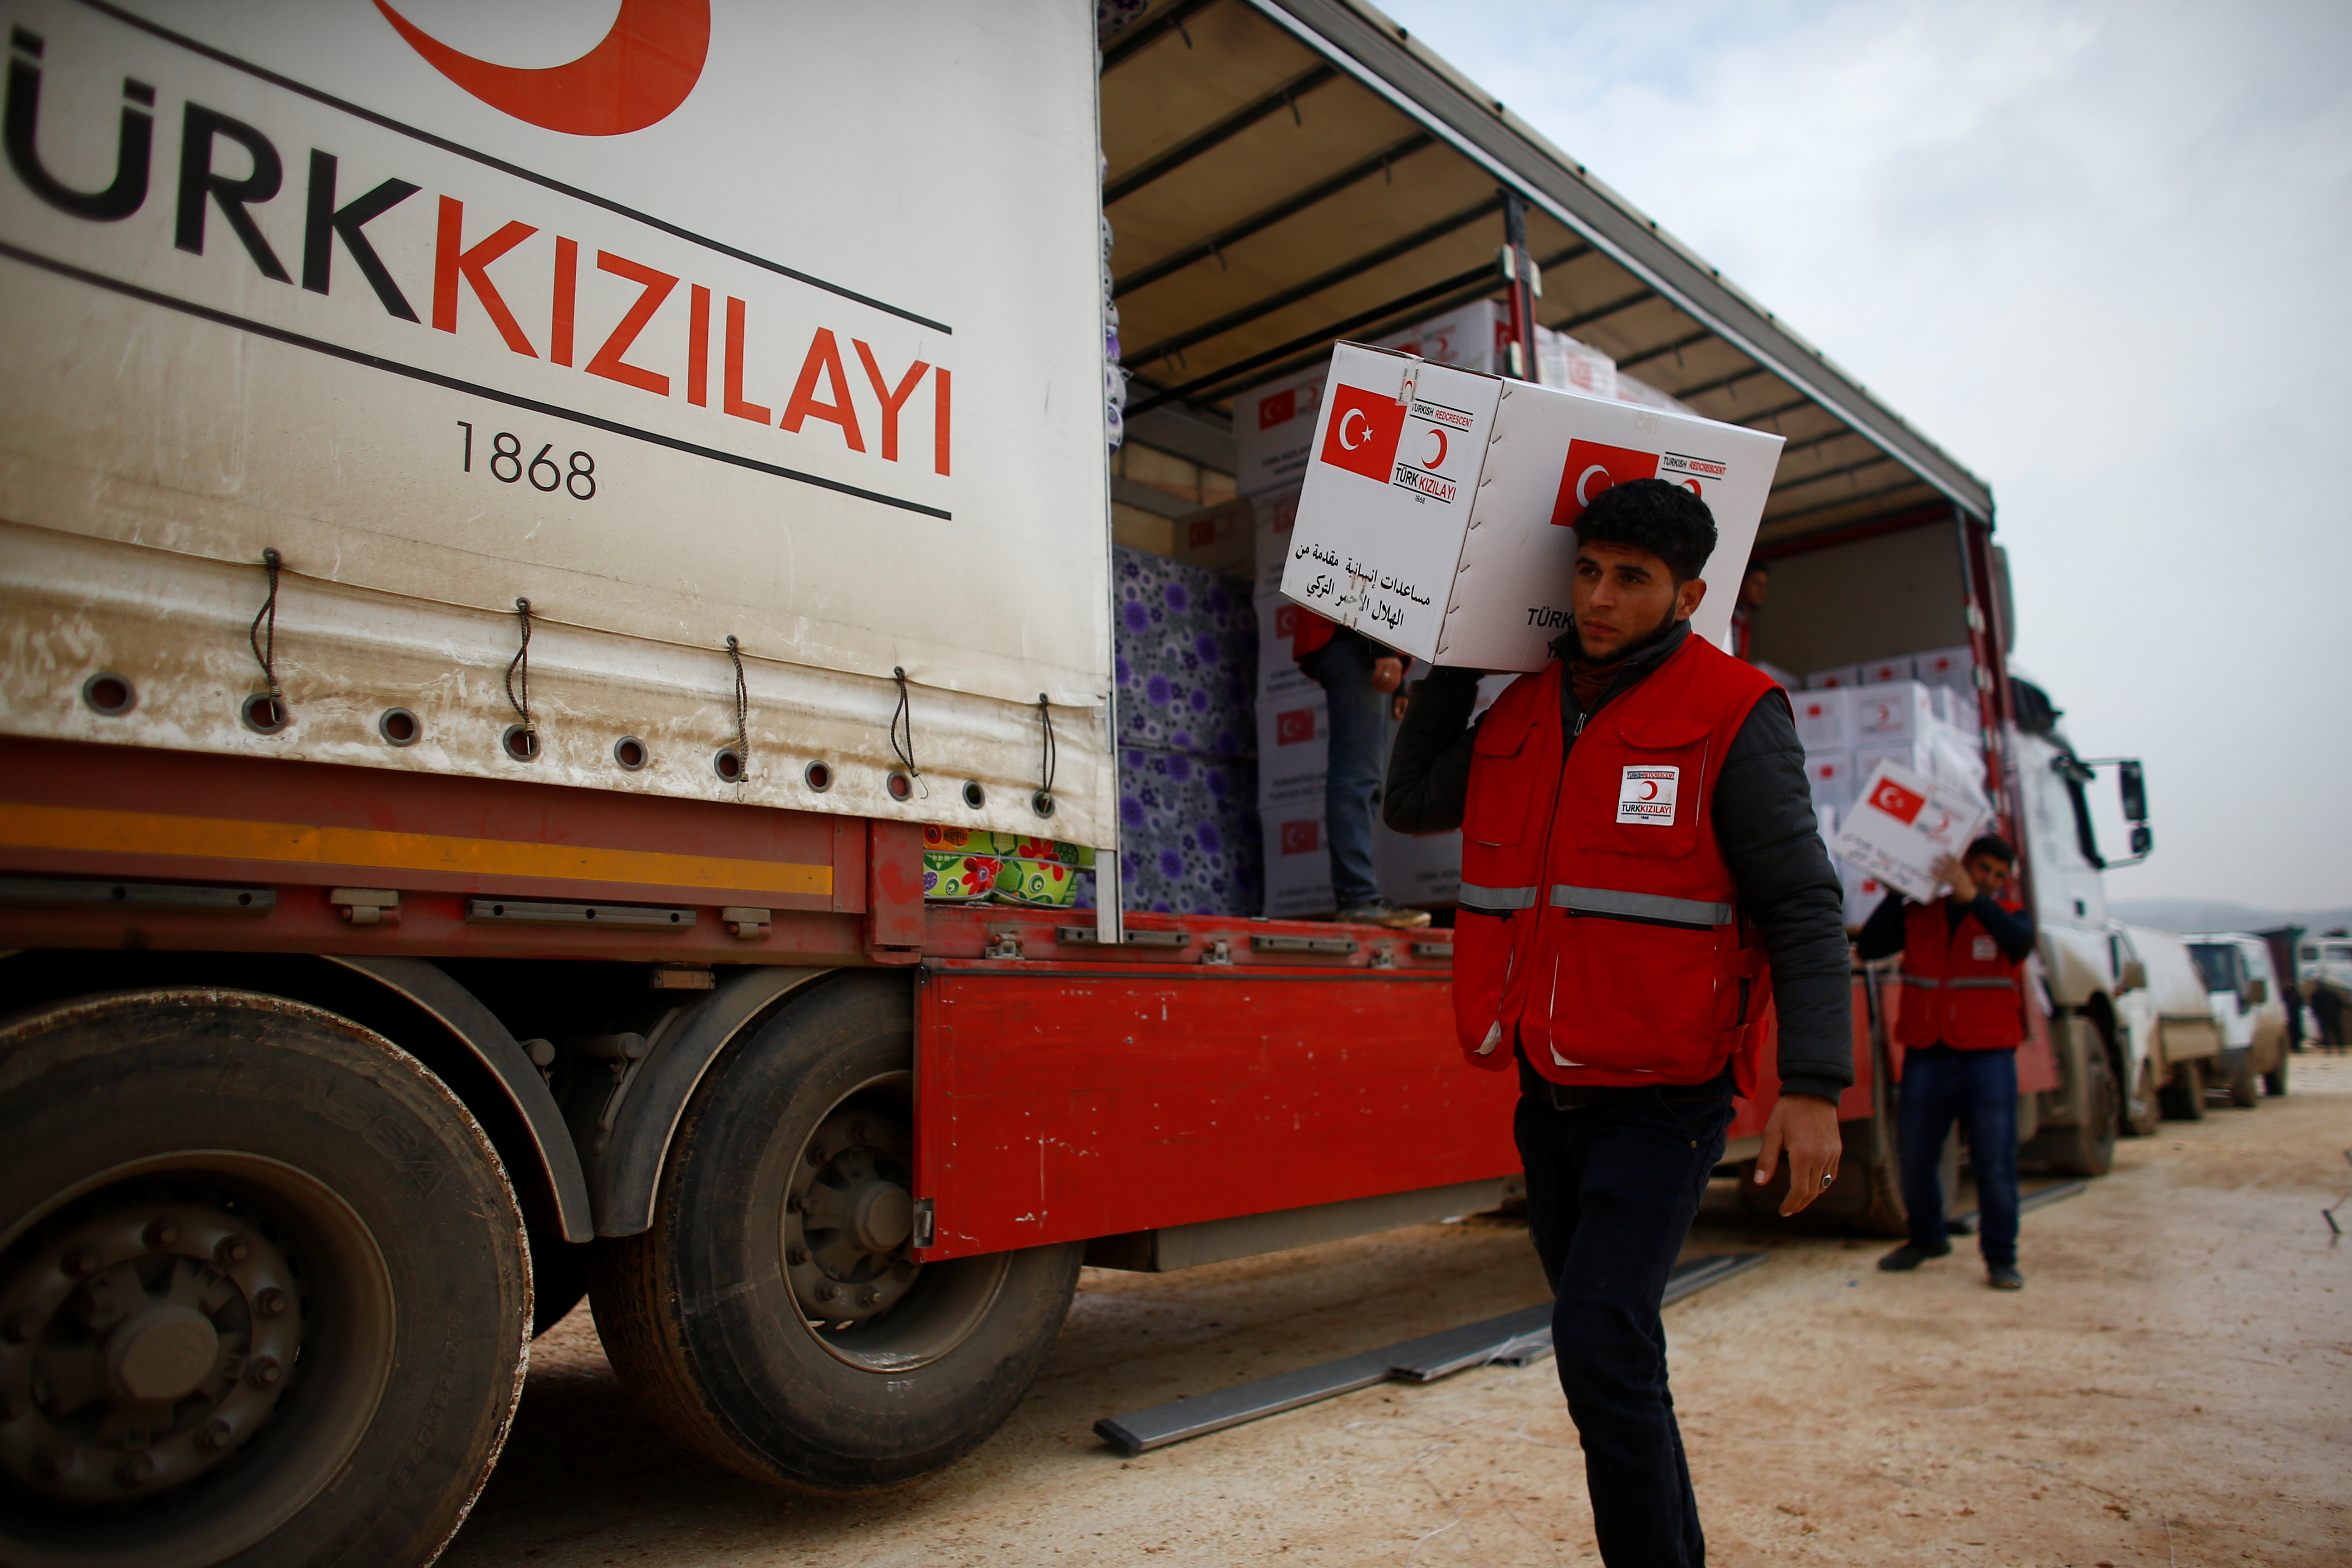 Turkish Red Crescent workers carry humanitarian aid at Kelbit camp, near the Syrian-Turkish border, in Idlib province, Syria January 17, 2018. Picture taken January 17, 2018. REUTERS/Osman Orsal